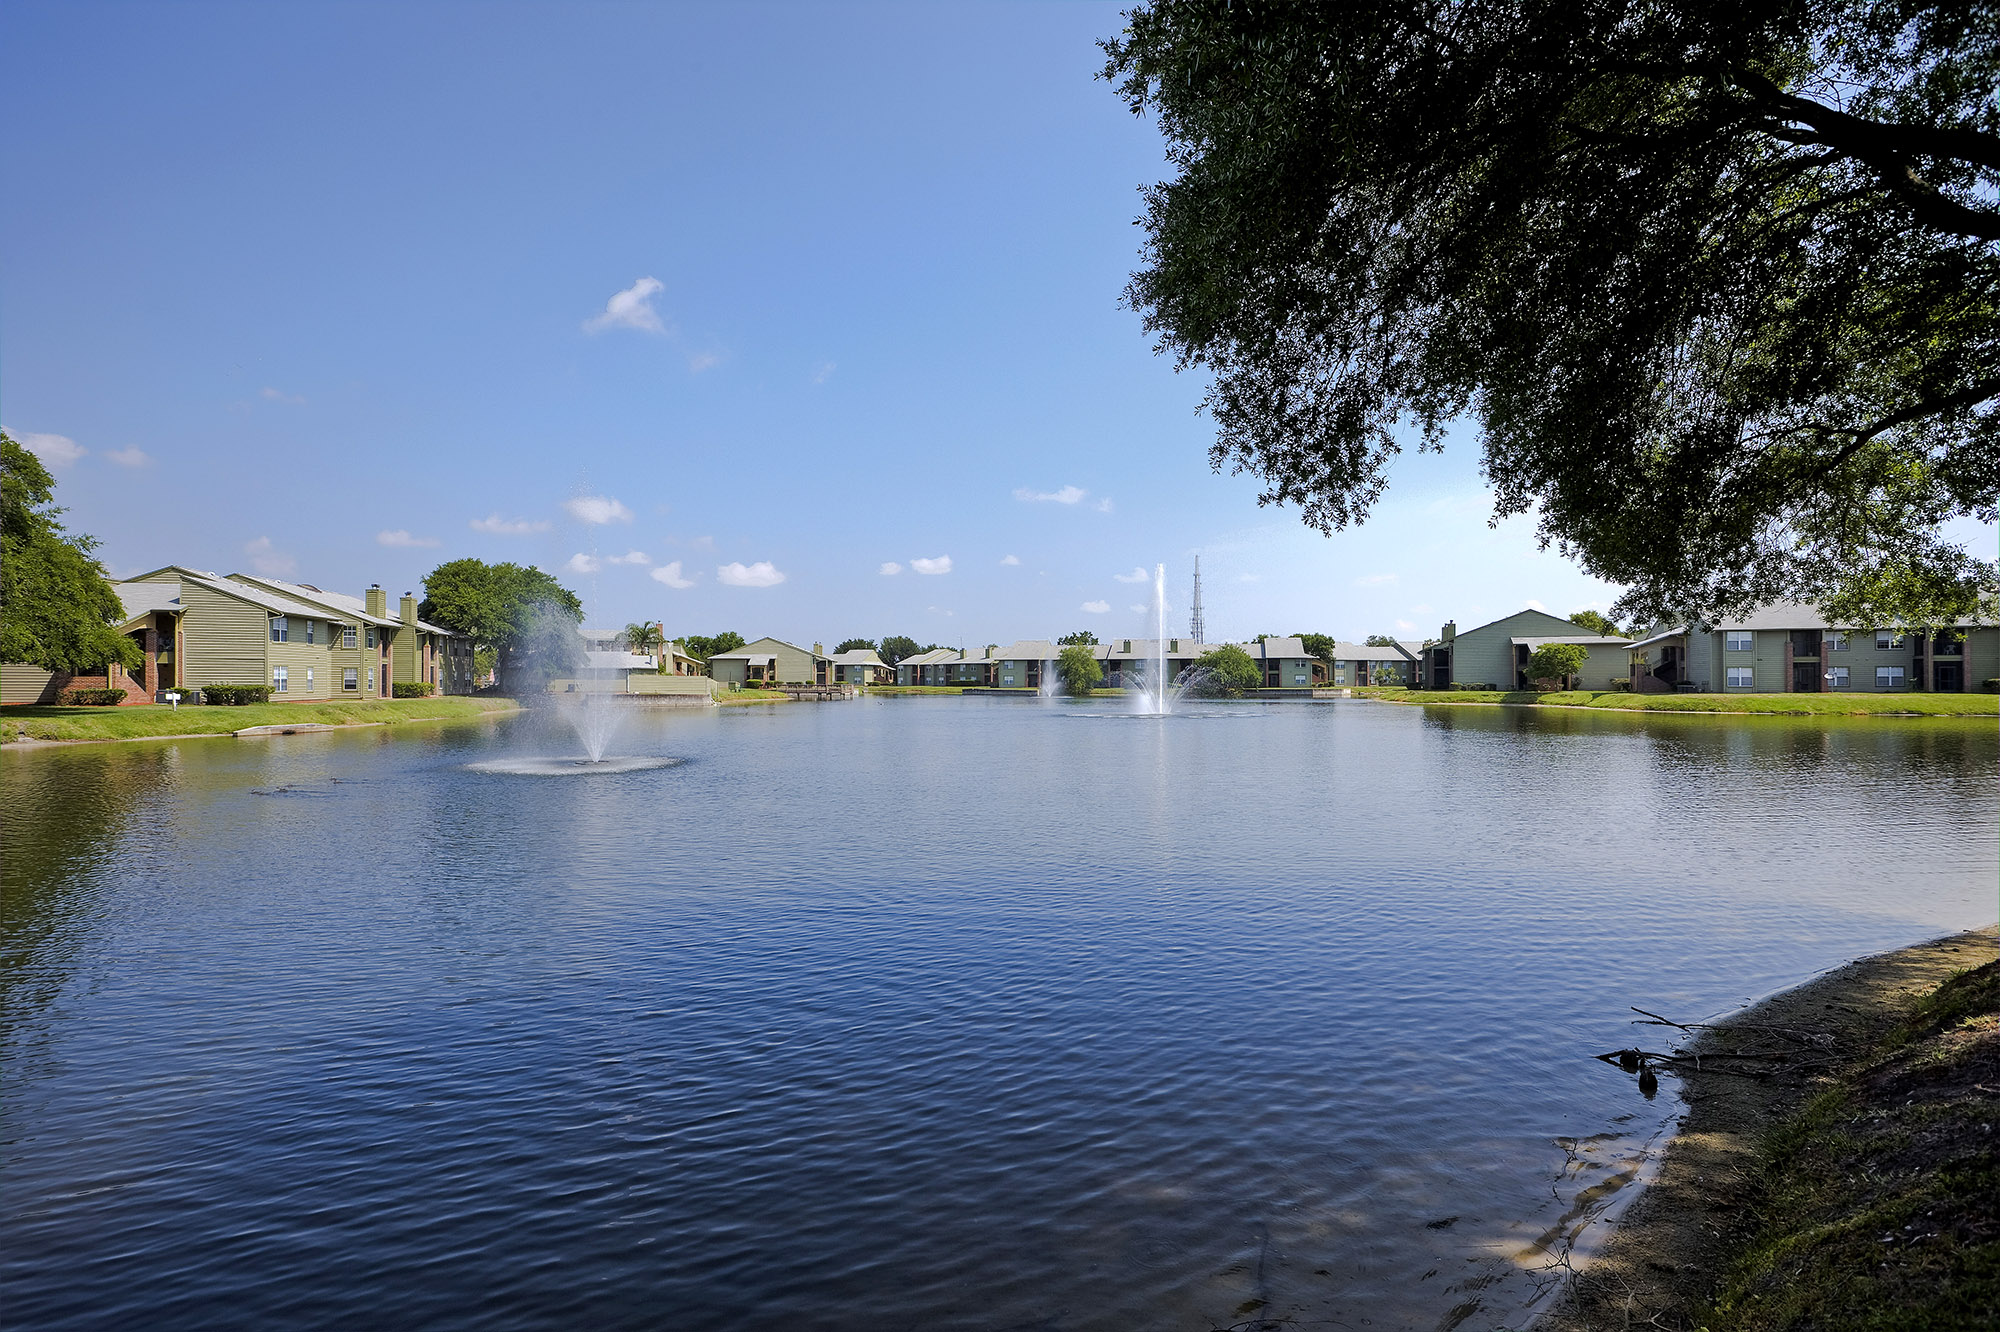 CharlestonLandings-Rental-Apartment-Brandon-Florida-Media-Grounds1.jpg